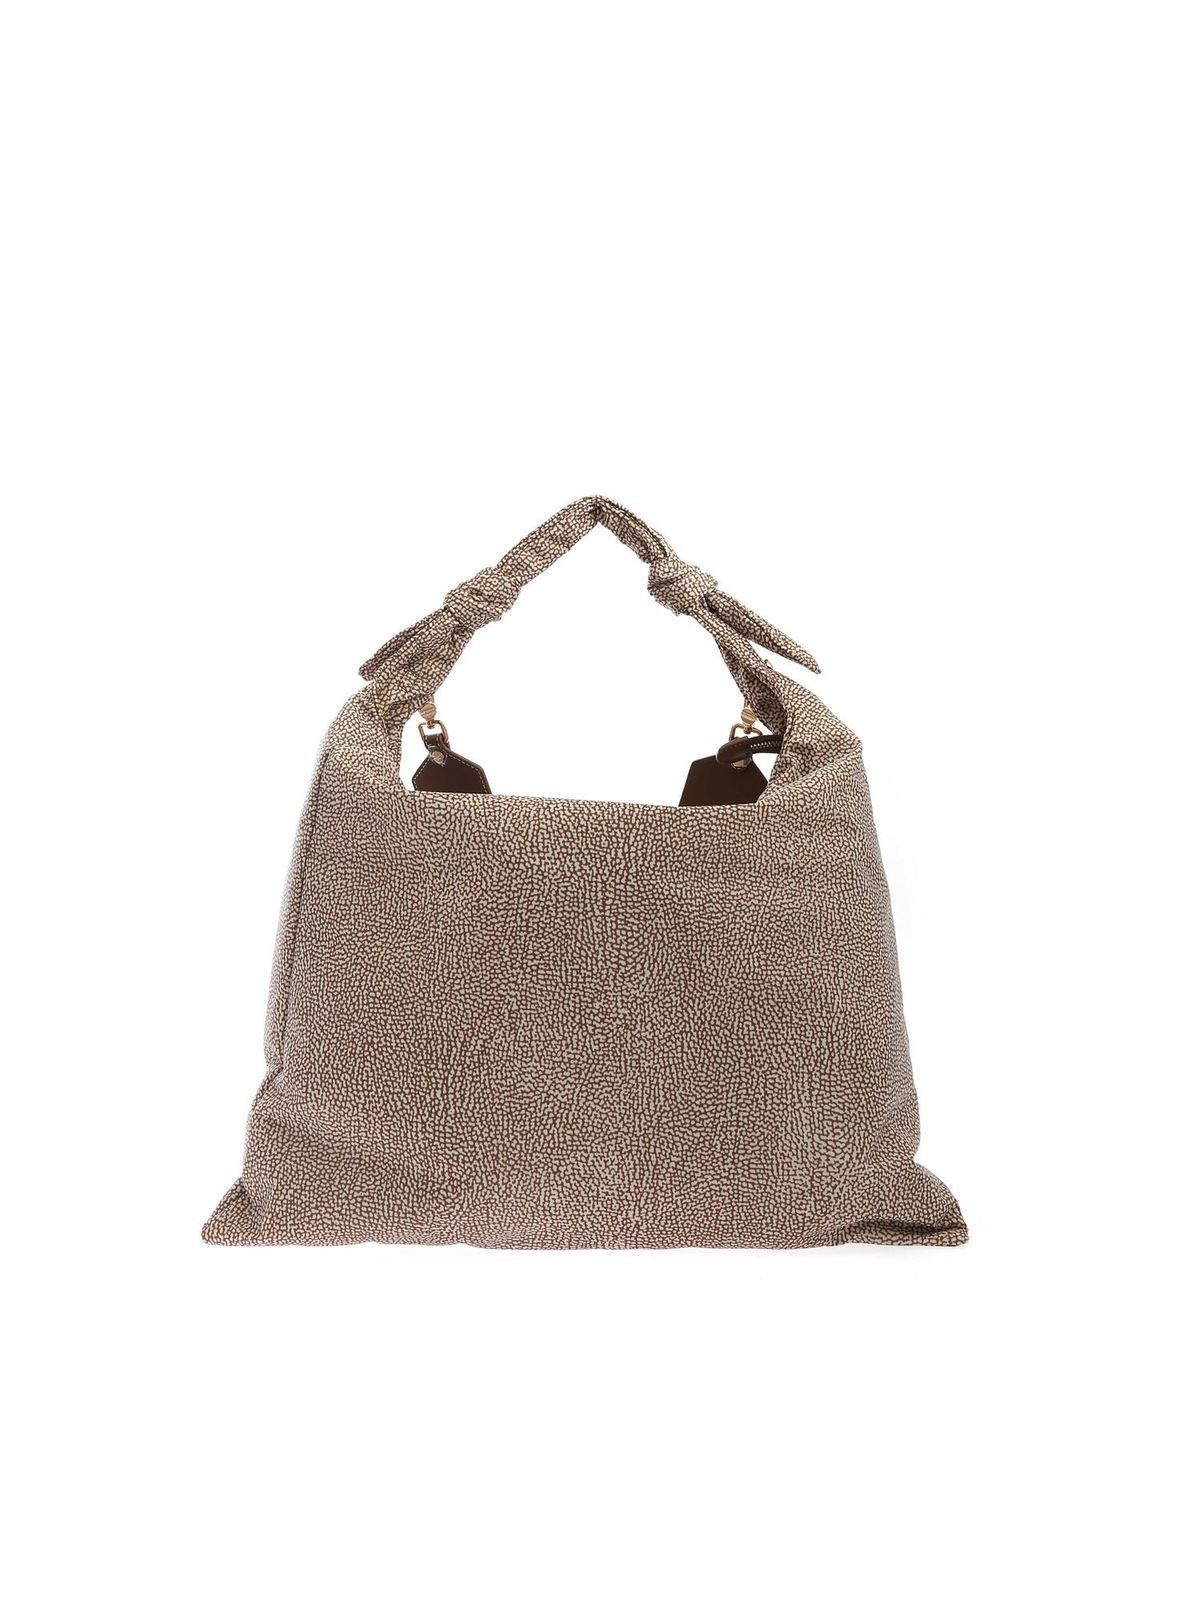 Borbonese PRINTED SHOULDER BAG IN BEIGE AND BROWN